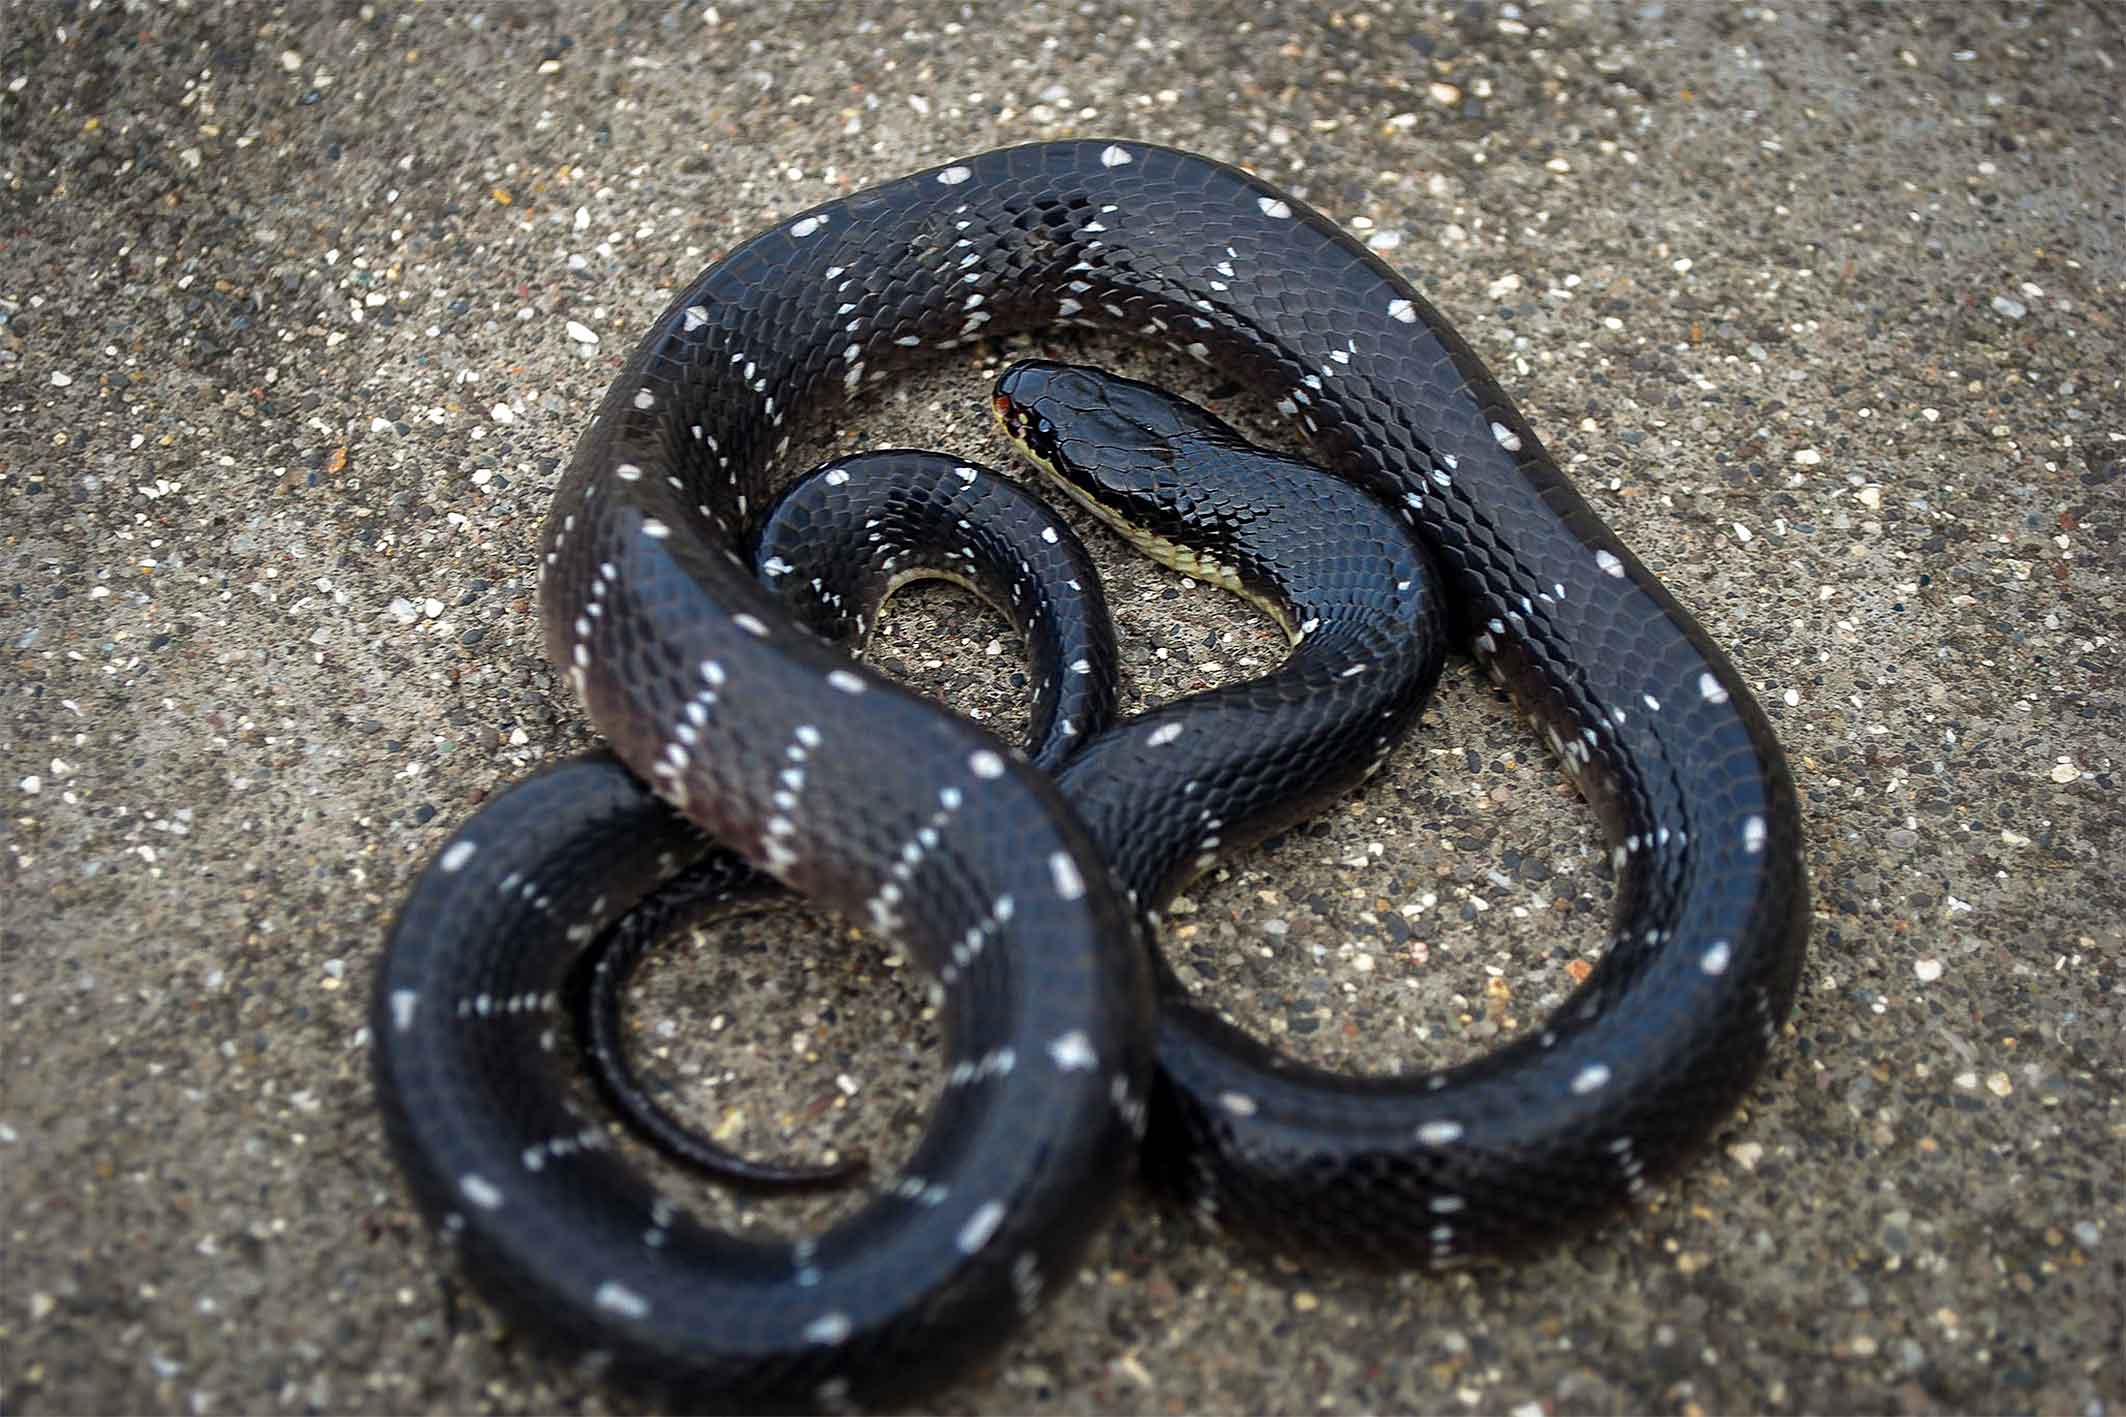 """Sind krait (Bungarus sindanus) is what is called a """"species complex"""" by taxonomists. The common Sind krait (Bungarus sindanus sindanus) and the Wall's Sind krait (Bungarus sindanus walli) are two subspecies within this group. It was first described in 1897 by Albert Boulenger, a zoologist of Belgian-British origin, and named after the Sind province, Pakistan, from where it was collected. The snake is found in northwestern India, and subspecies seen throughout the Deccan Plateau. Their bites are fatal. These snakes are medically important and determining the species is necessary to produce the right kind of antivenom, which is often variable within a species and between closely related species. Photo: Girish Choure"""